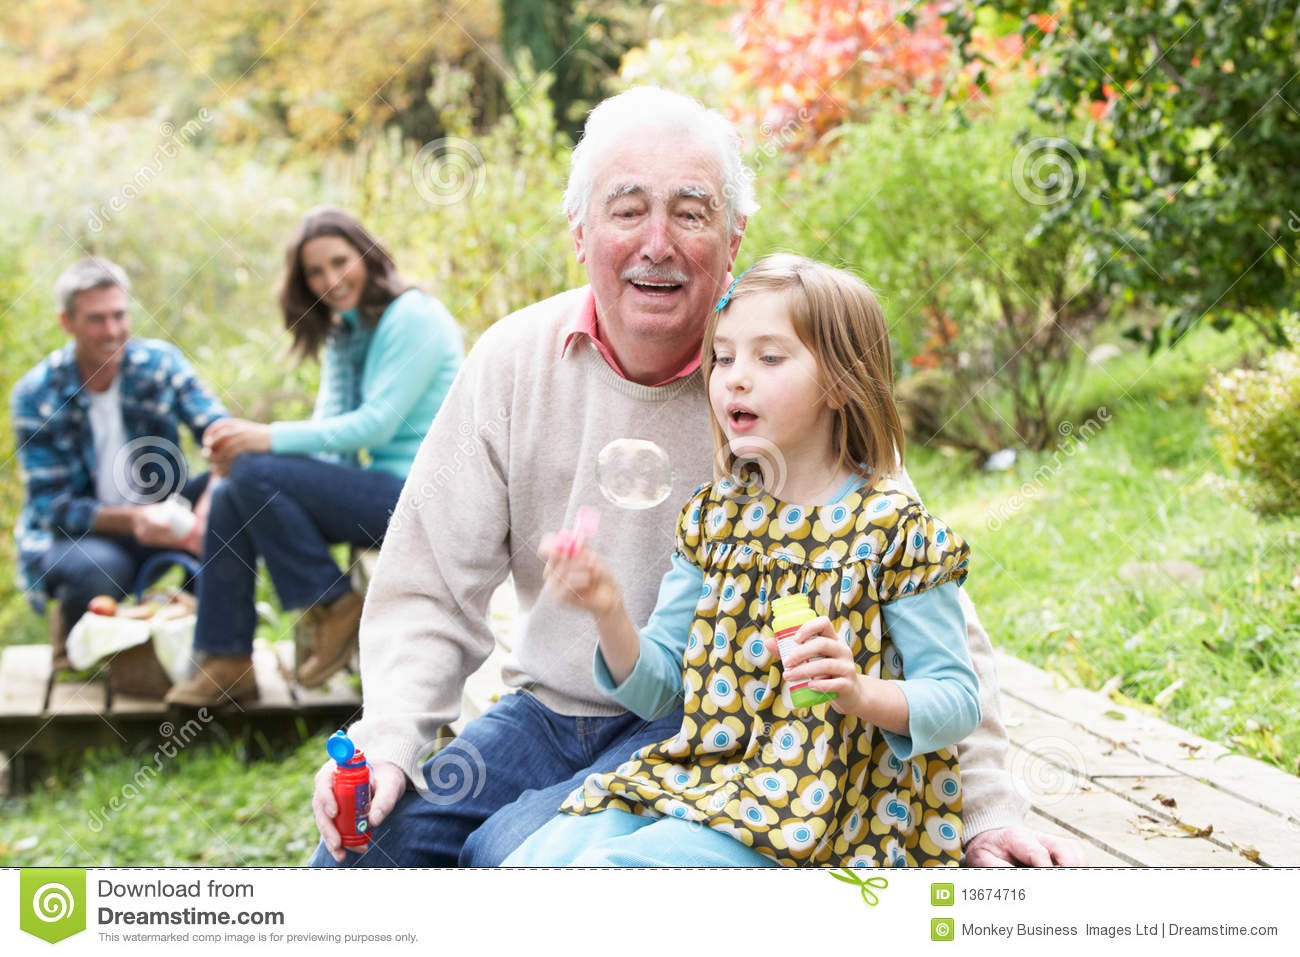 Grandpa and his granddaughter walking in a park. by